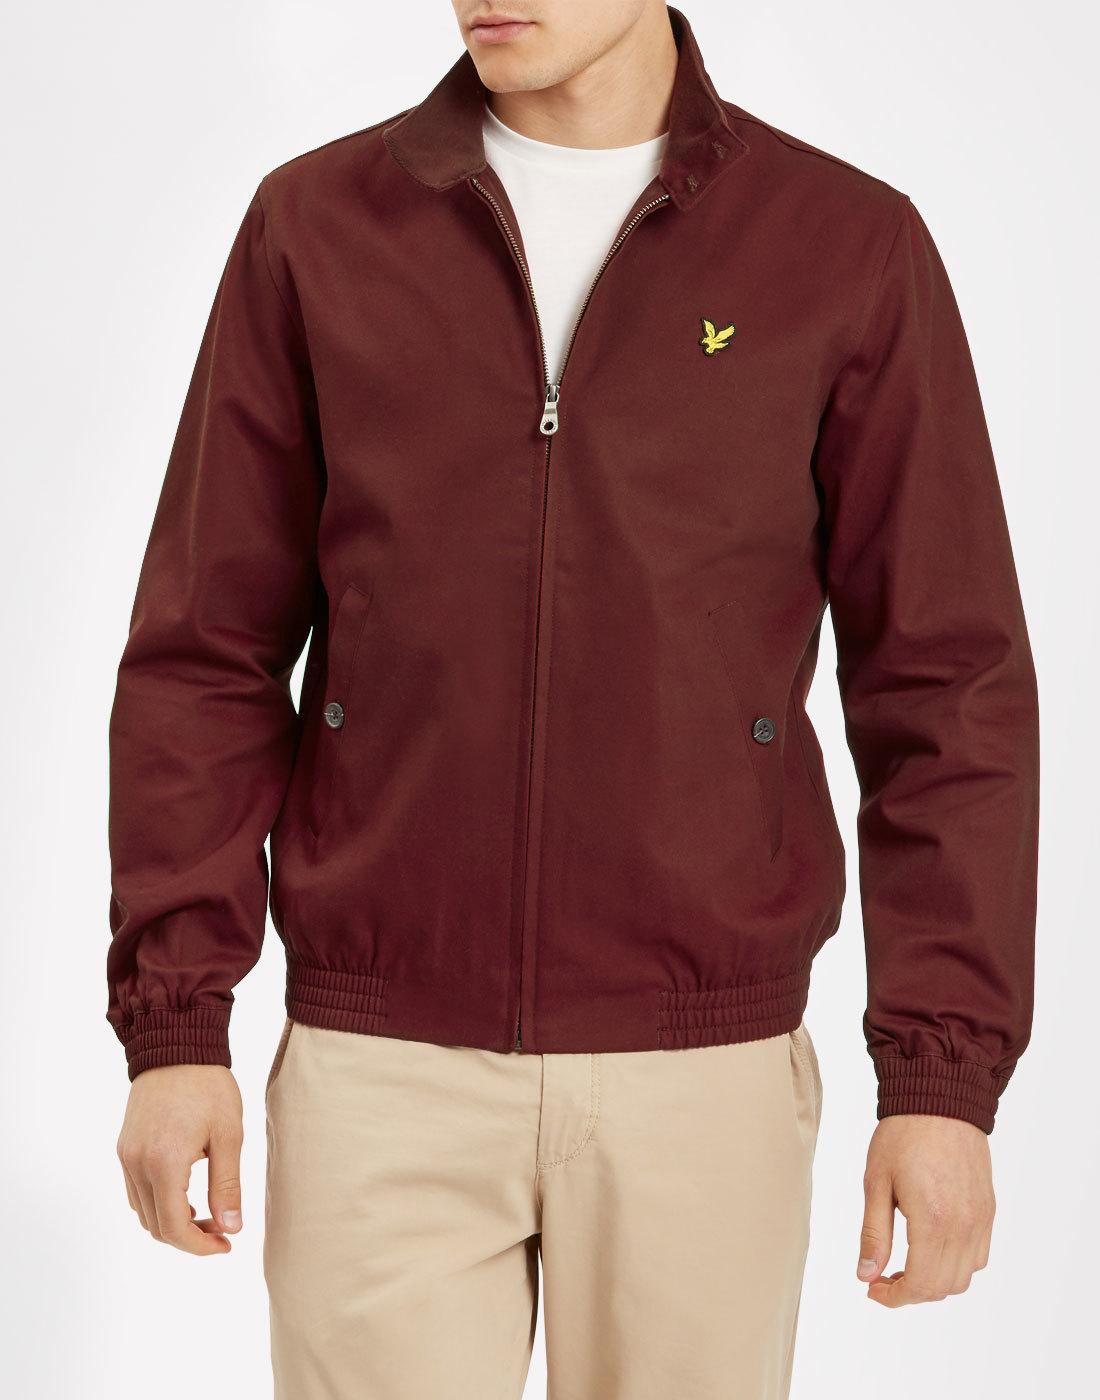 LYLE & SCOTT Retro Mod Harrington Jacket CLARET